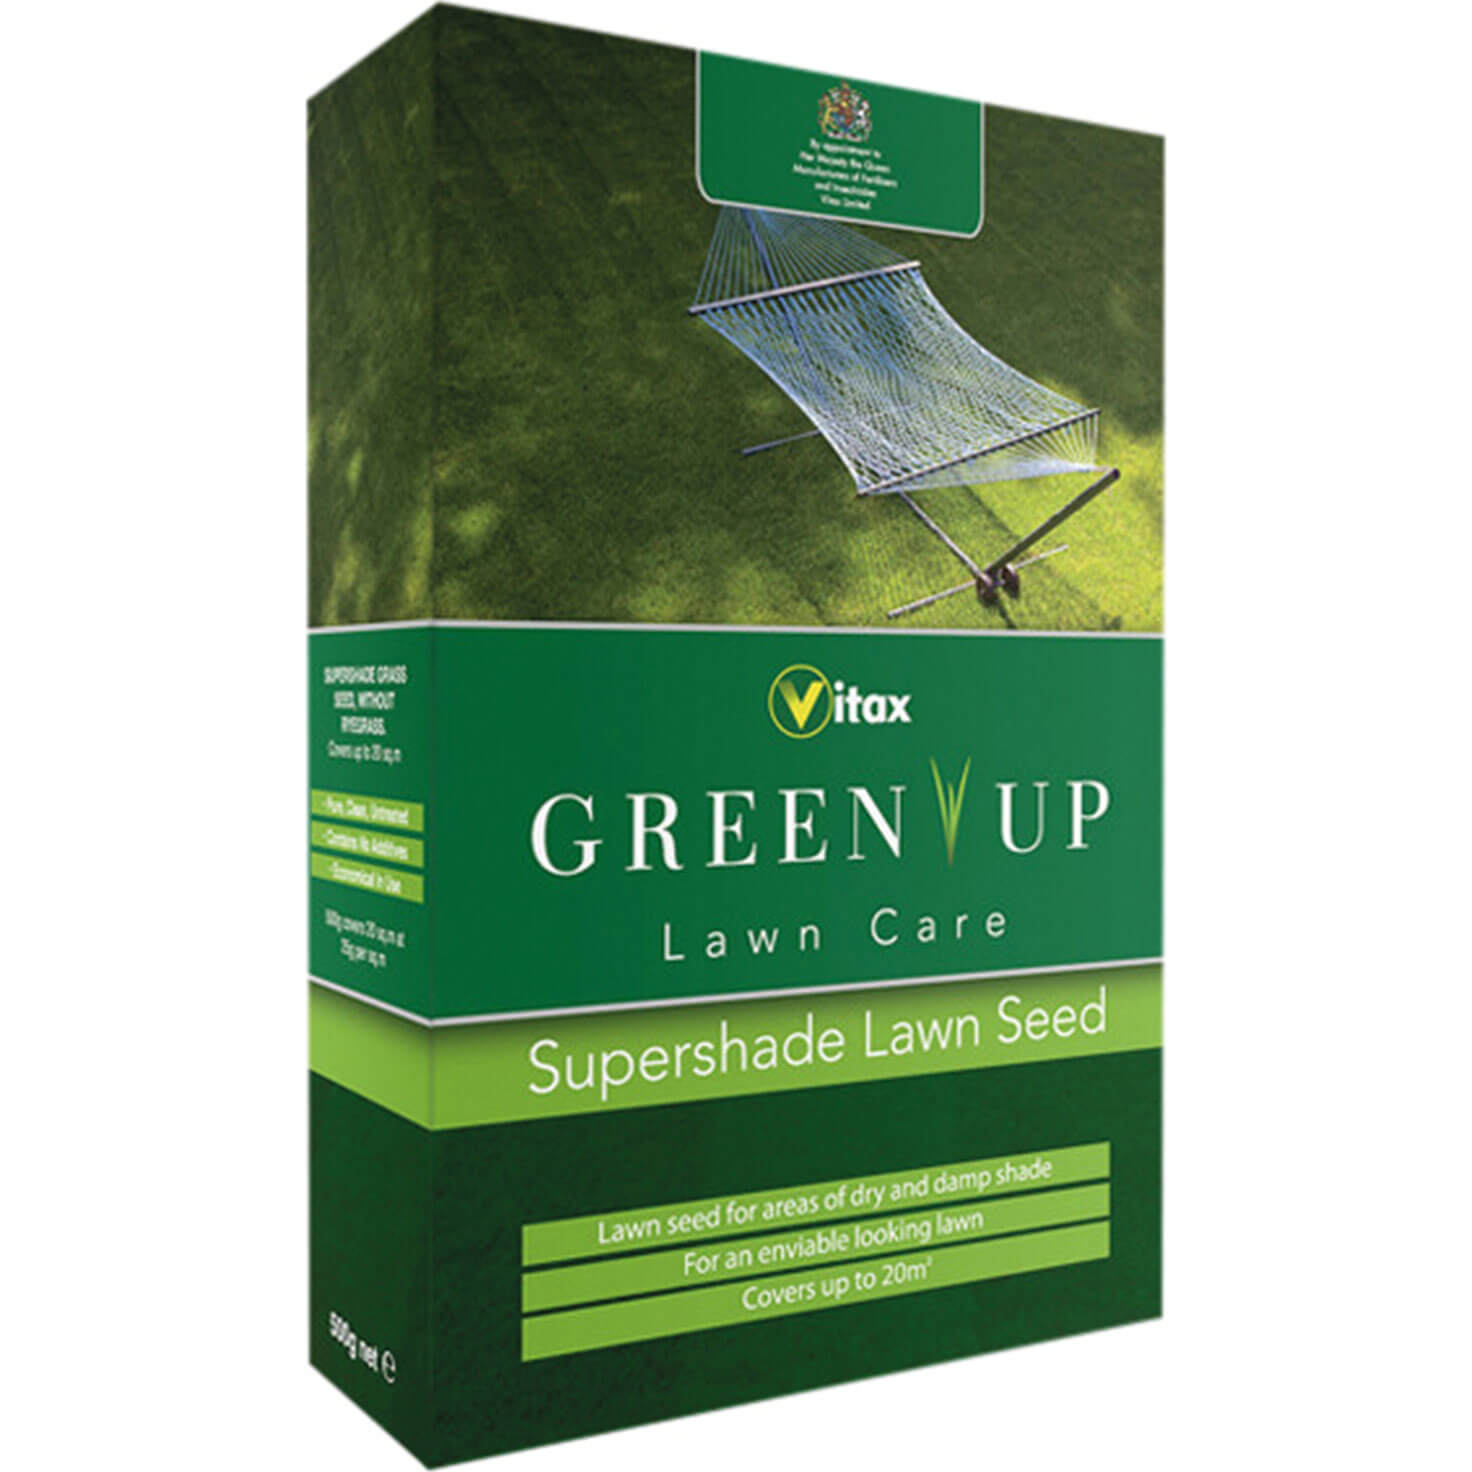 Vitax Green Up Supershade Lawn Seed 500g